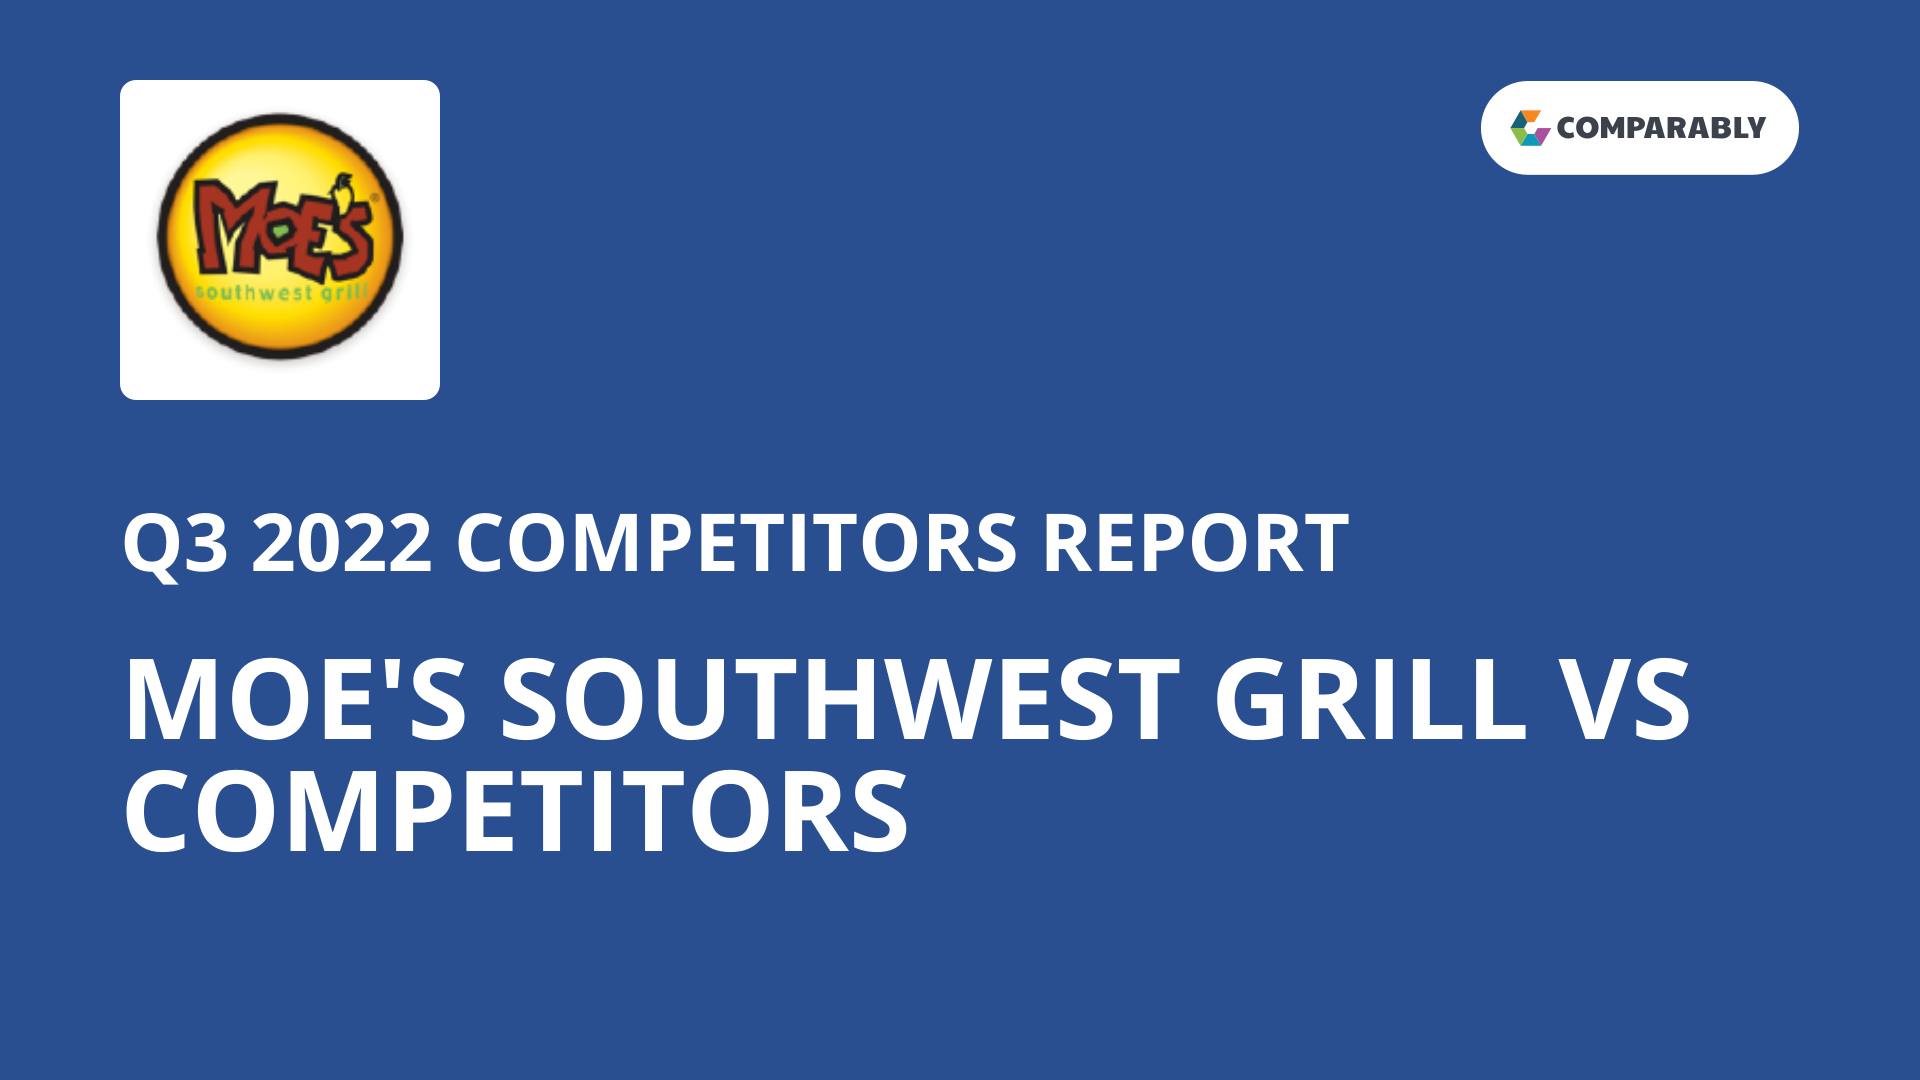 Moe S Southwest Grill Competitors Comparably